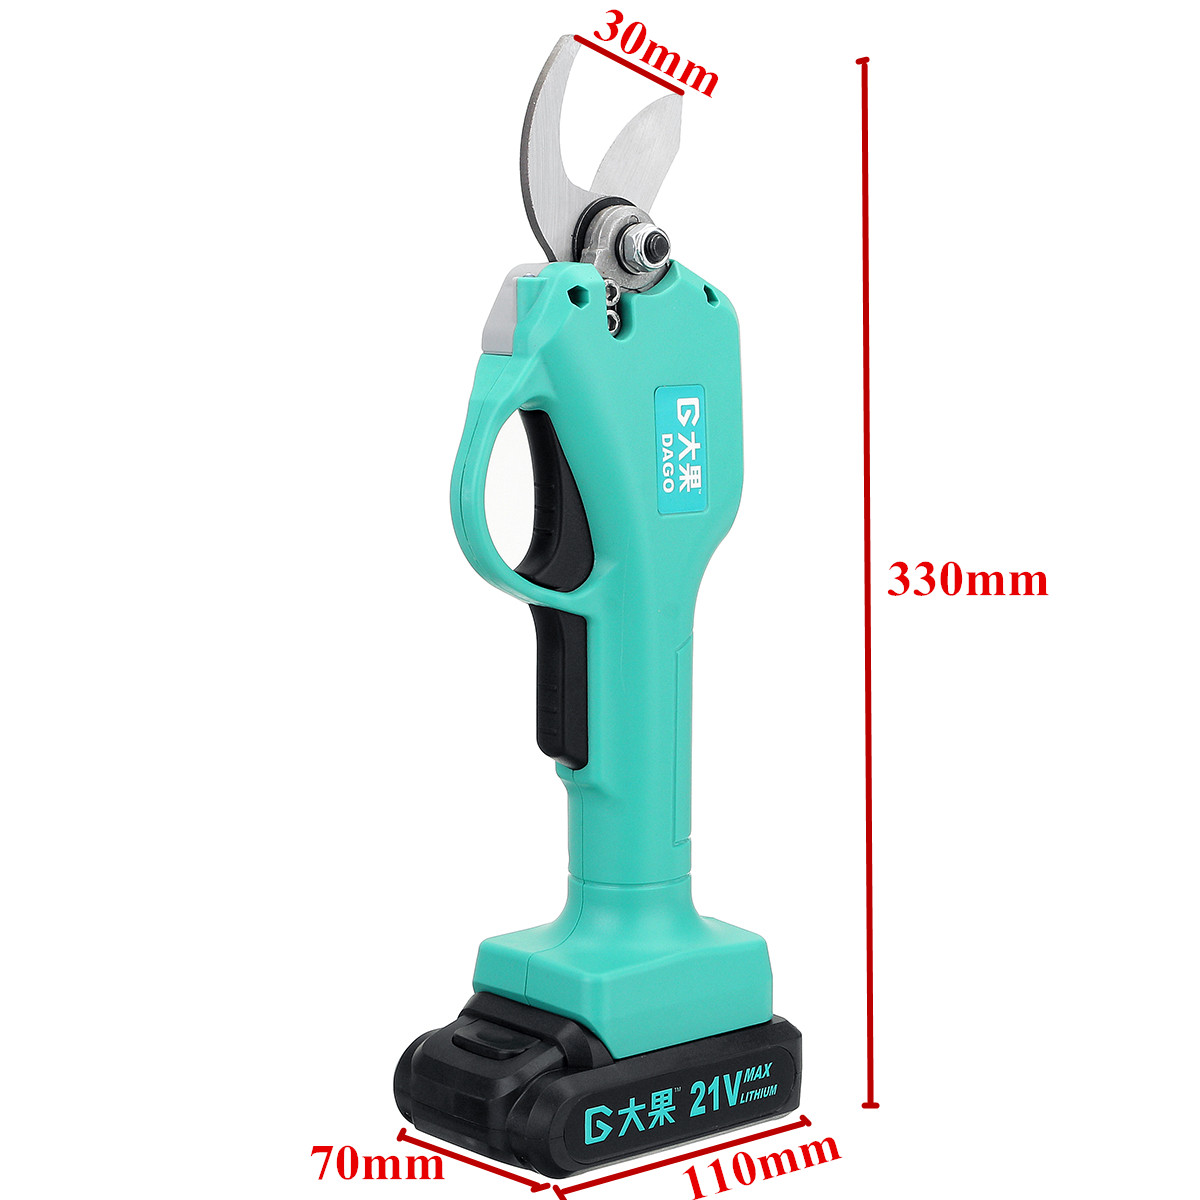 21V Wireless and Rechargeable Electric Garden Scissors for Pruning Branches with 30mm Maximum Cutting and 2 Li-ion Battery 12